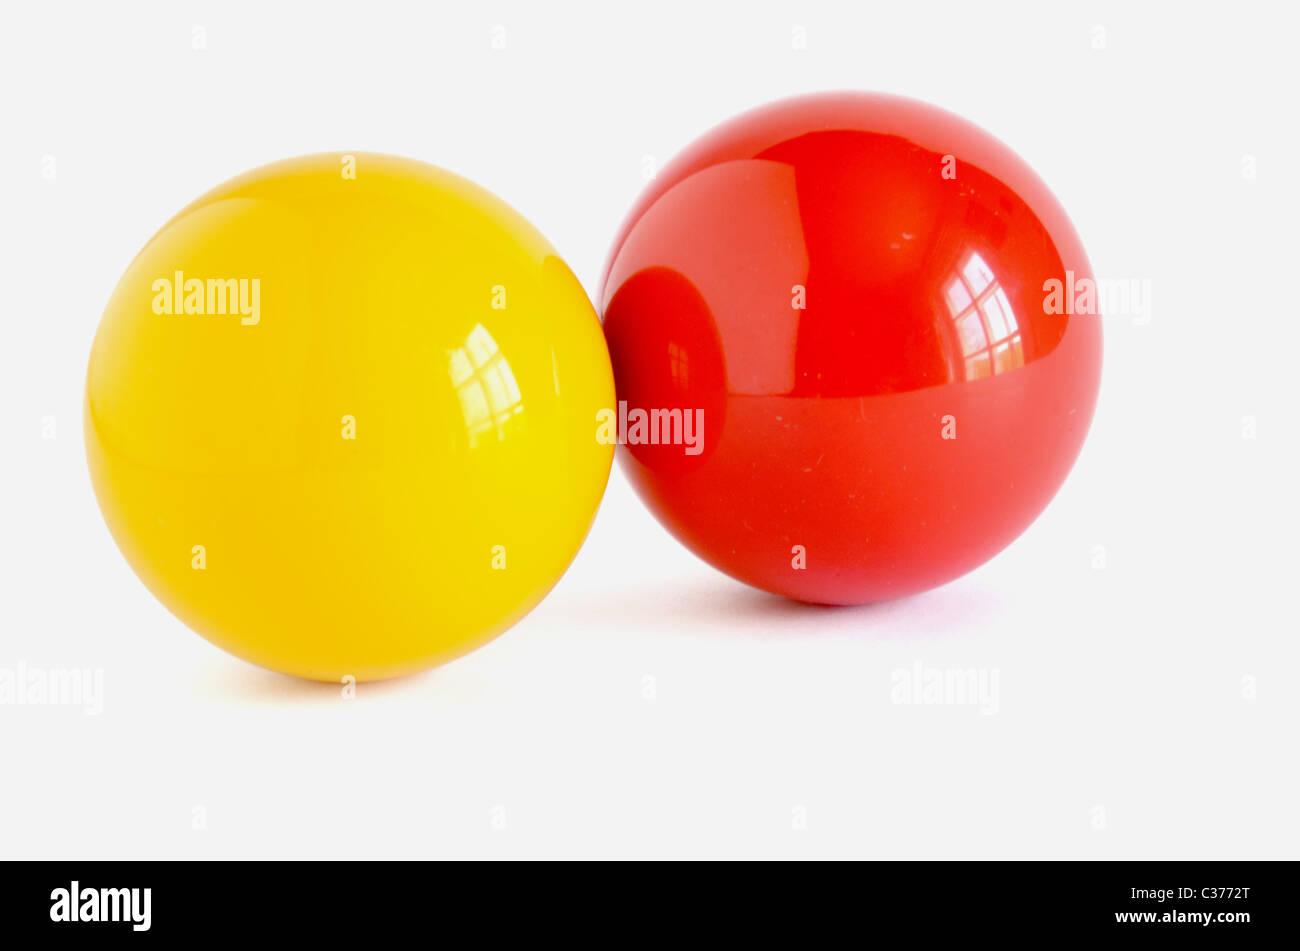 yellow and red cue bill on white background - Stock Image